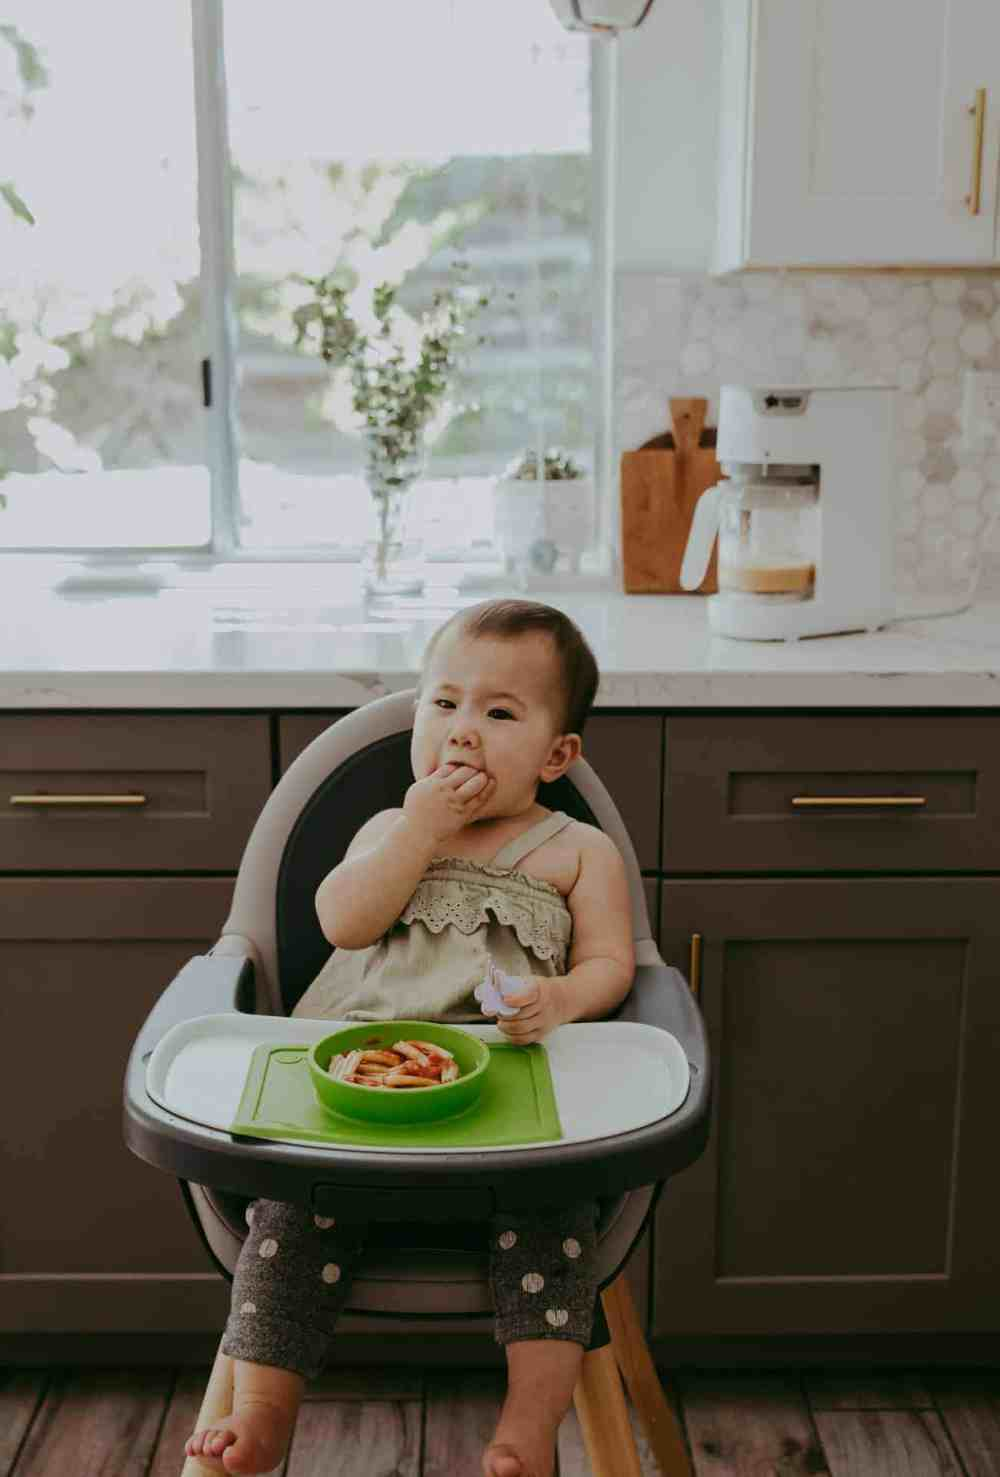 baby eating food in a white and gray high chair in the kitchen